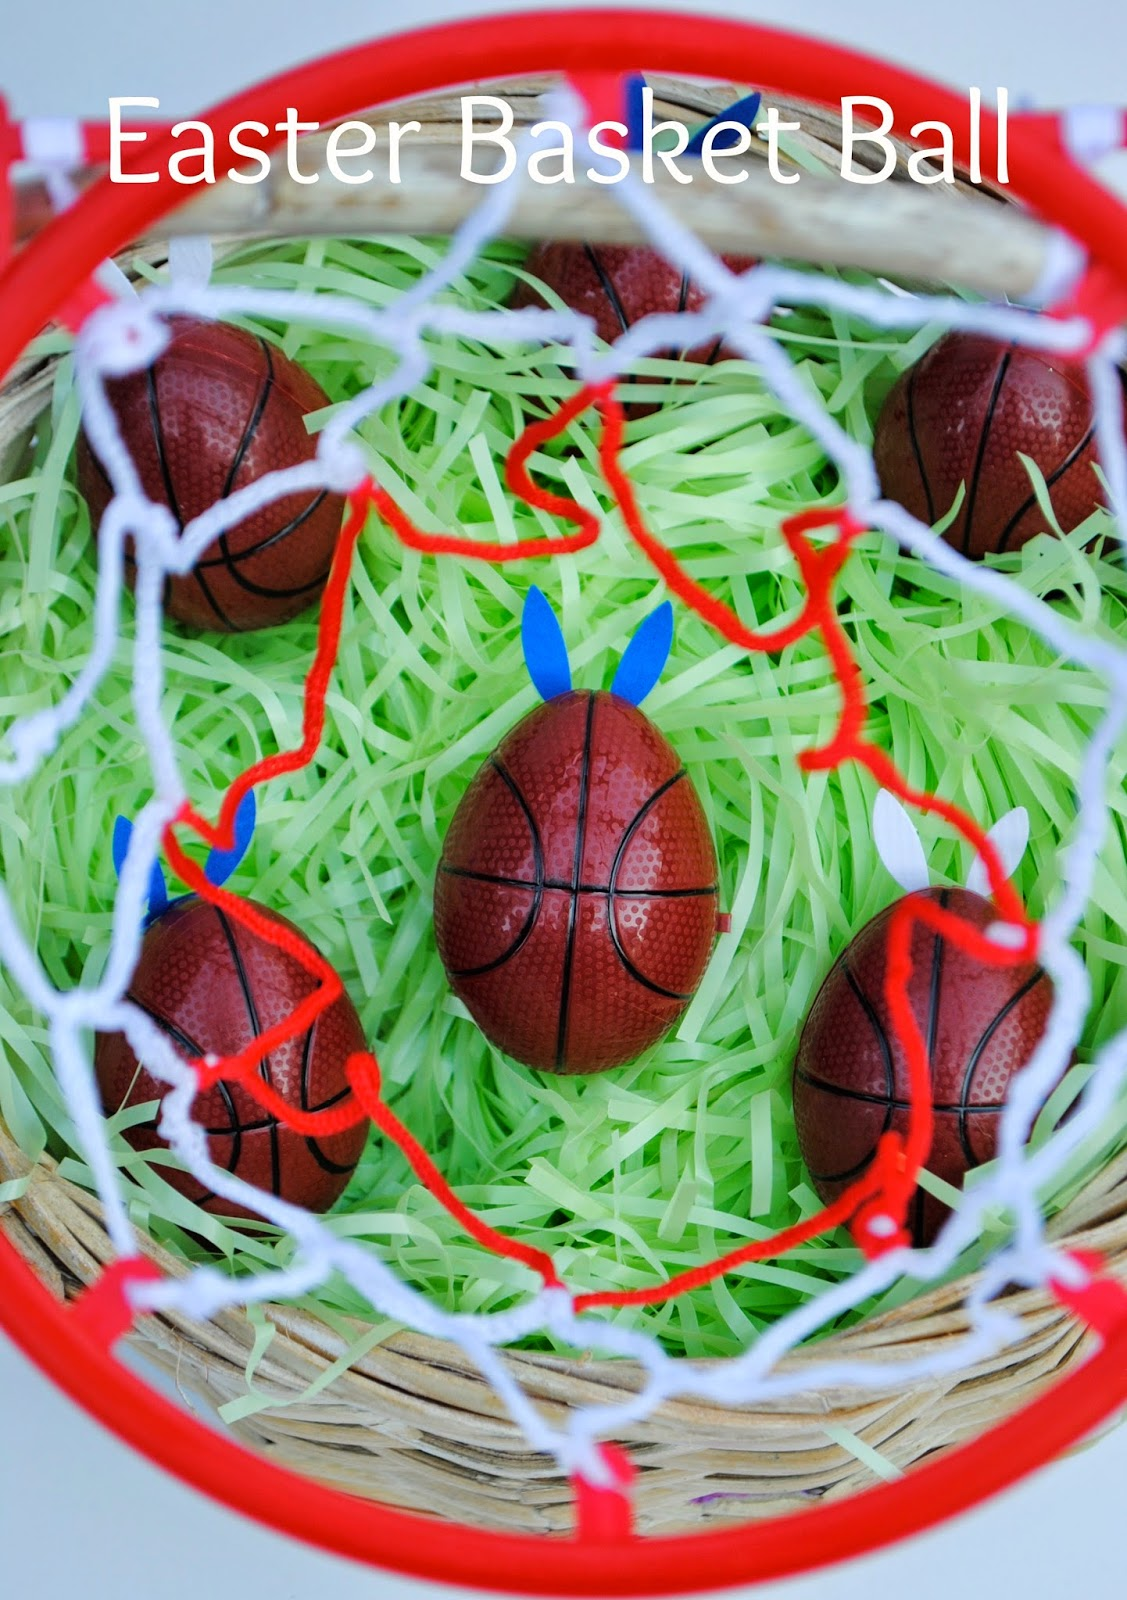 March Madness Basketball Easter Baskets | www.jacolynmurphy.com